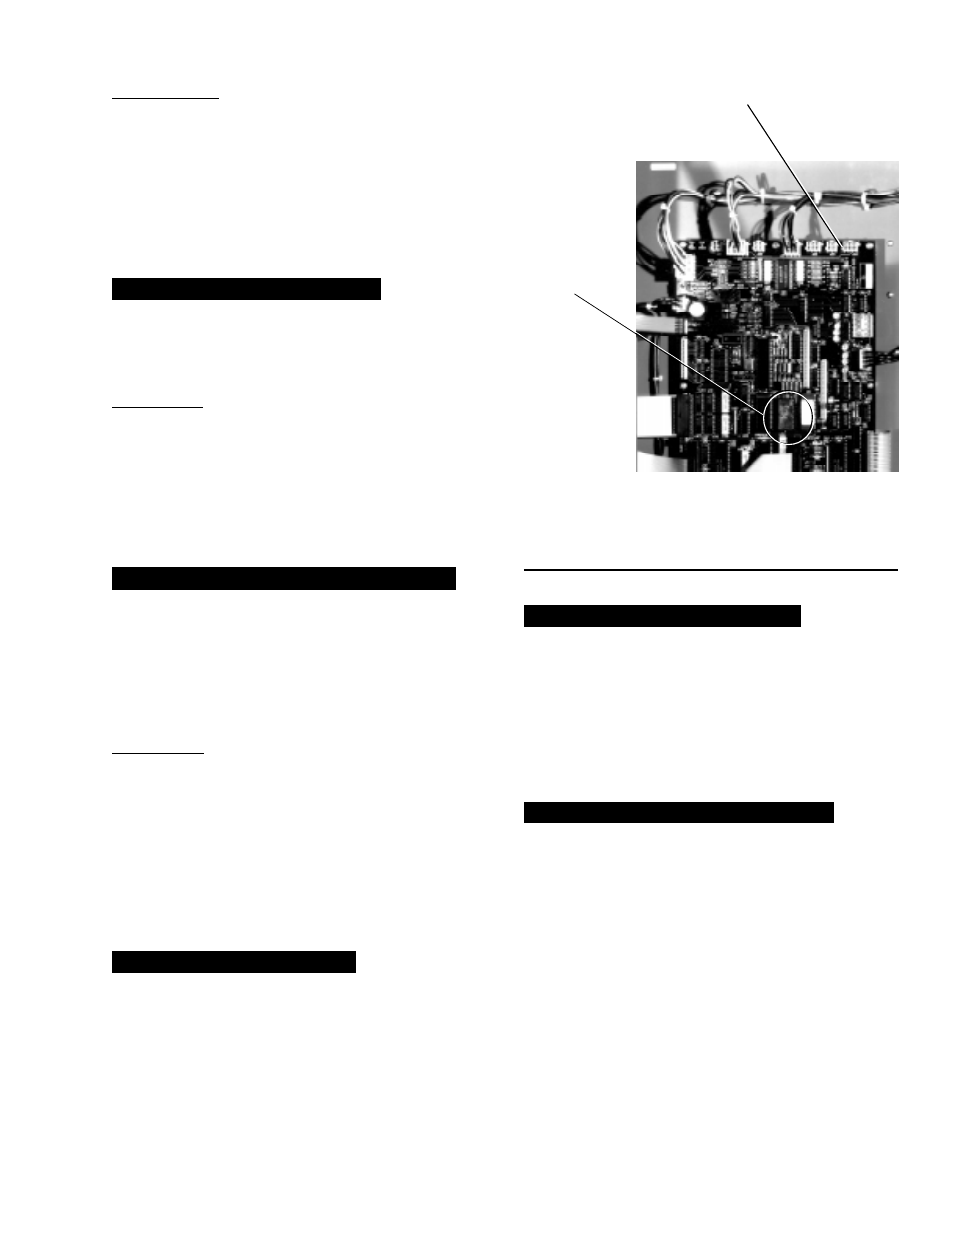 York Chiller Manuals 22re Timing Chain Diagram Http Wwwkeywordpicturecom Keyword Array Millennium Yk M3 G4 Thru S6 S4 J2 User Manual Page